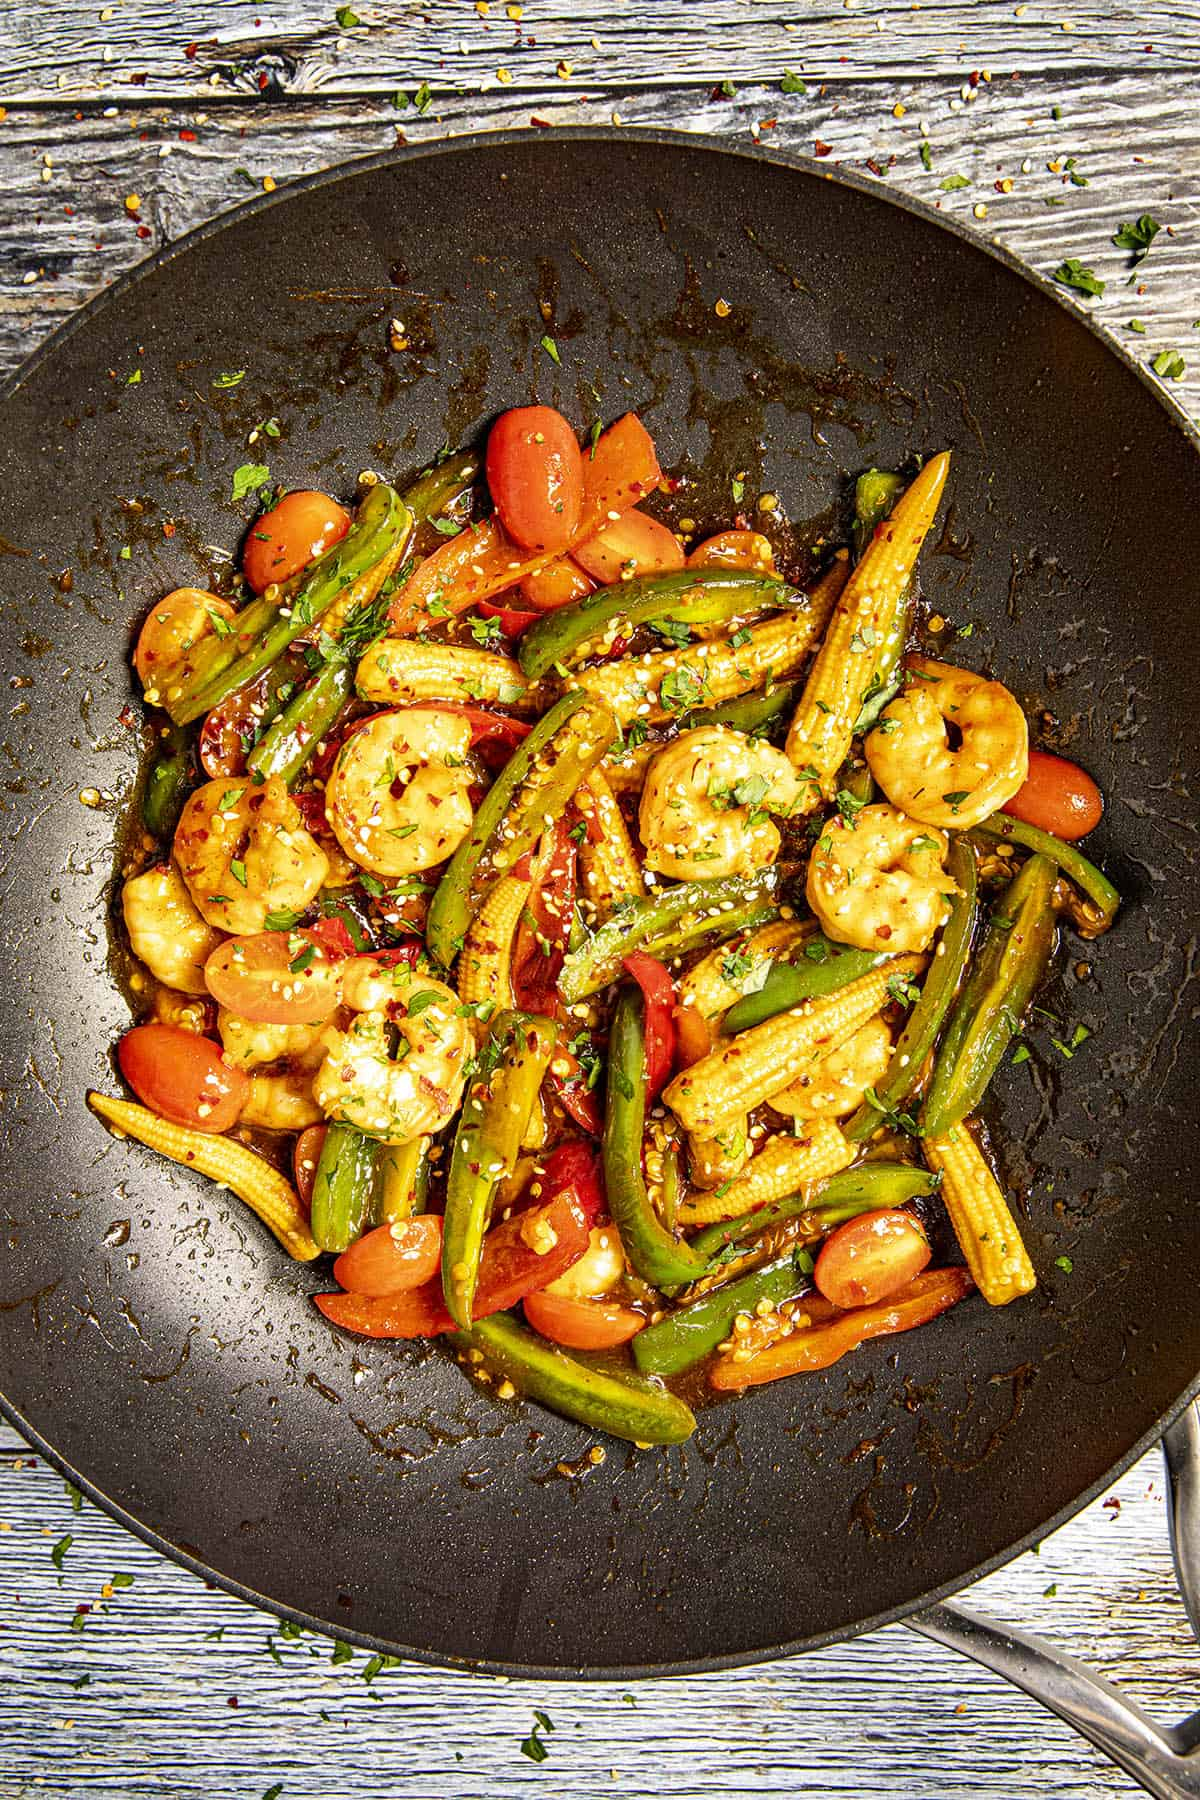 Teriyaki Shrimp Stir Fry in a pan